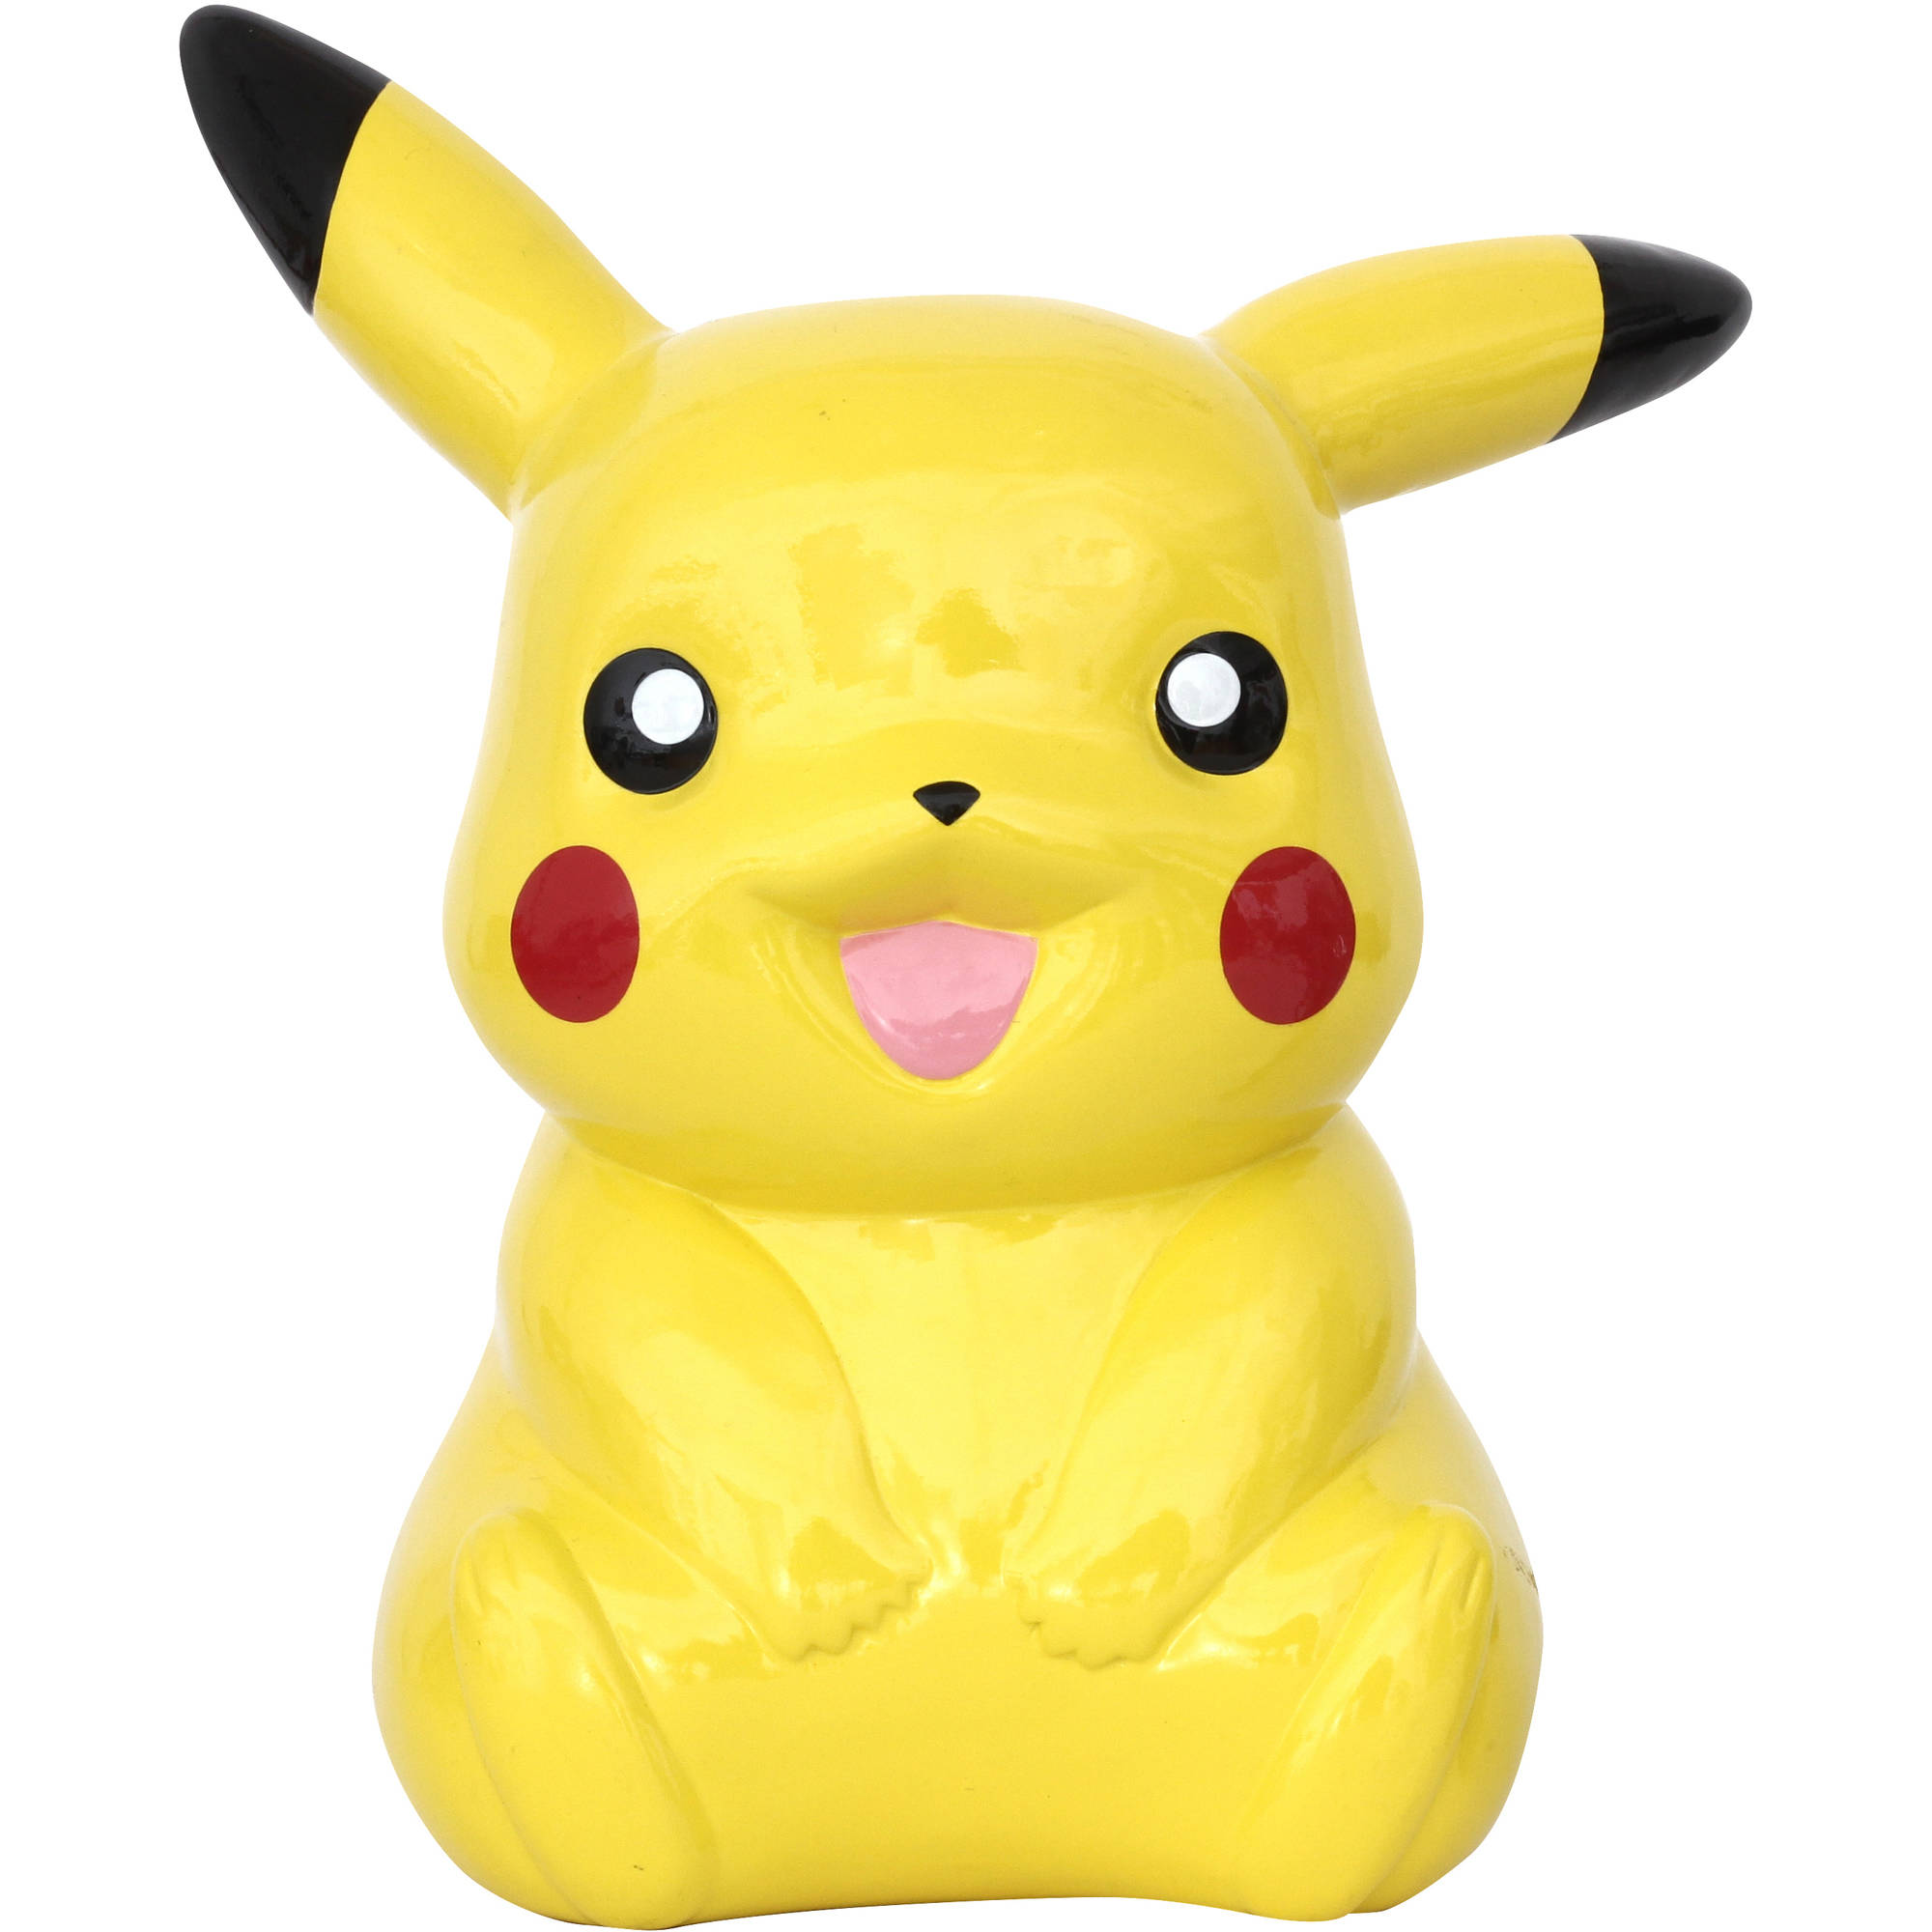 Pokeman Licensed Pikachu Bank